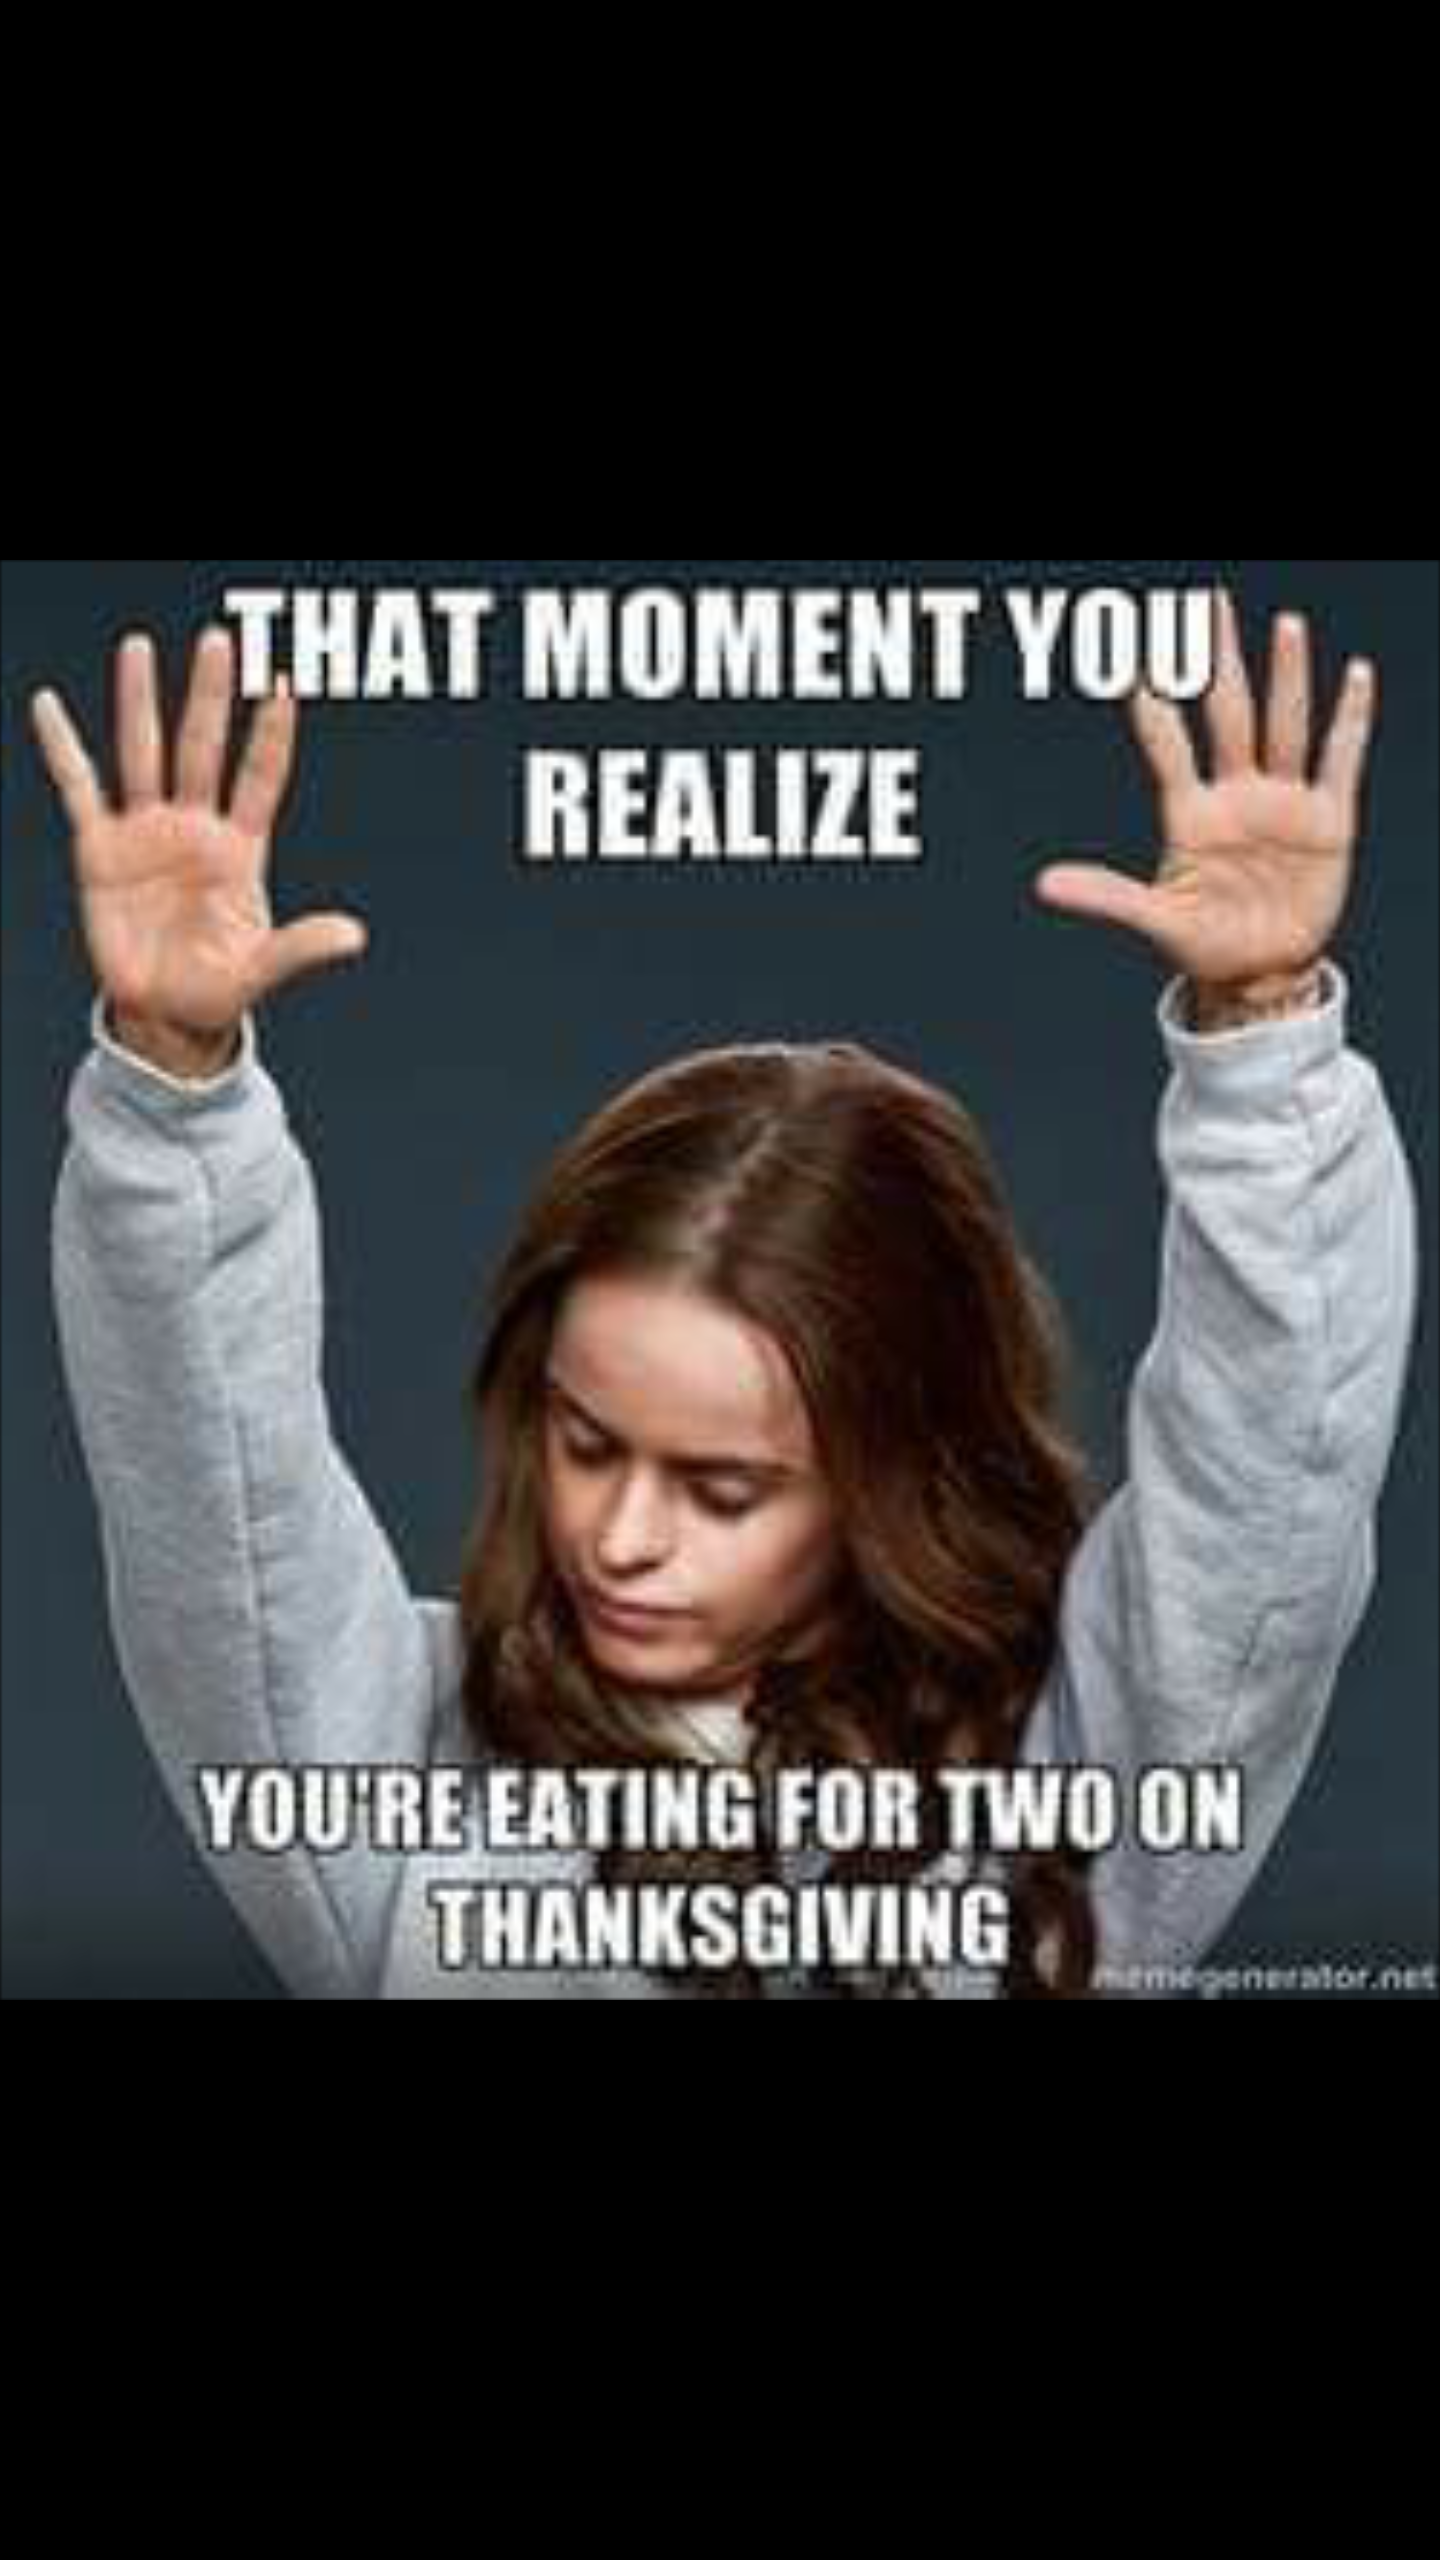 Fashion style Meme Thanksgiving pictures for girls